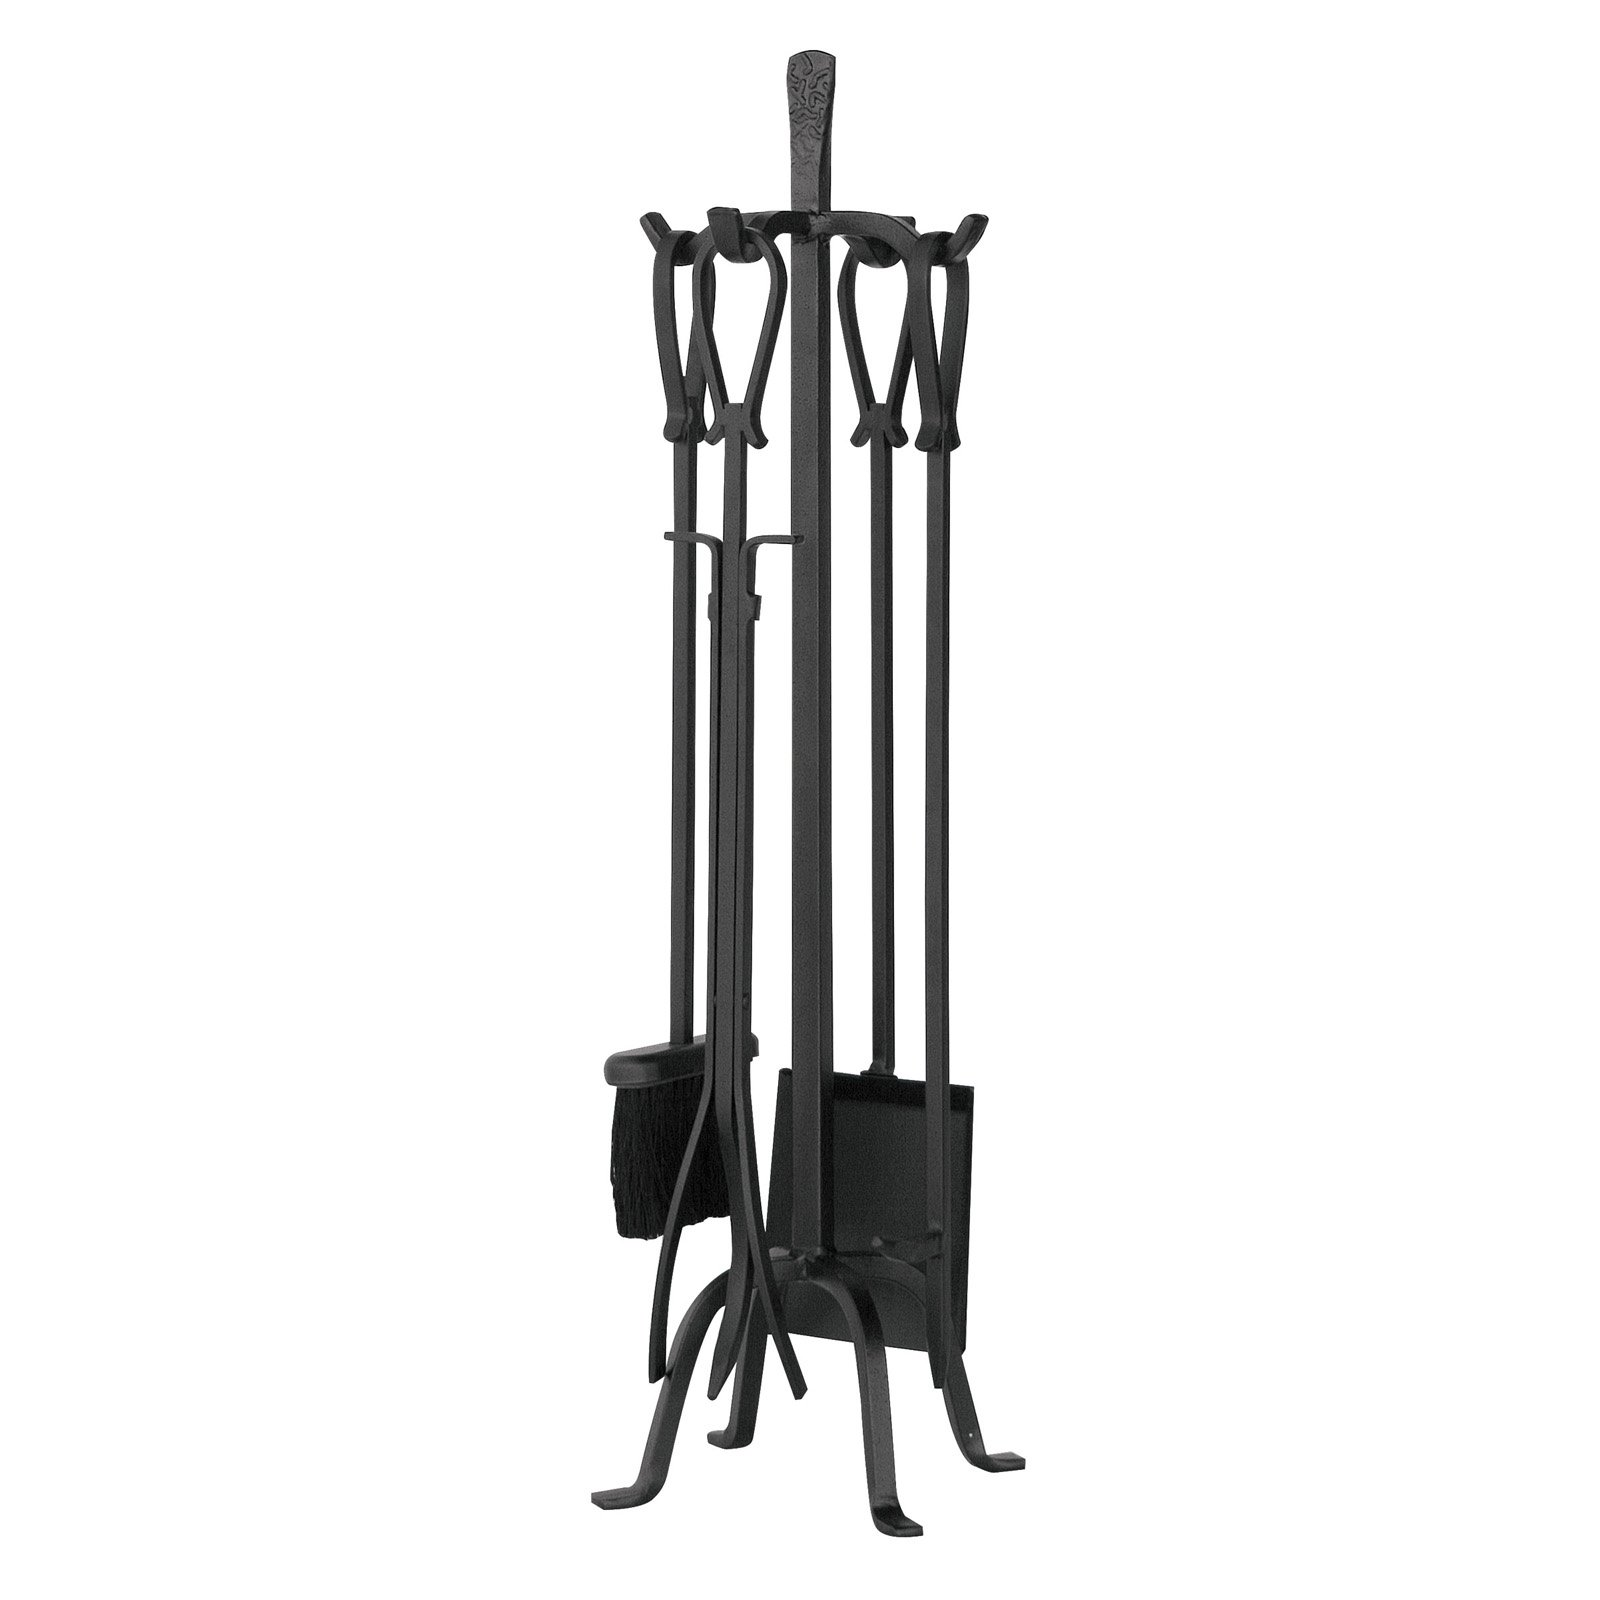 Fireplace Poker Sets Uniflame 5 Piece Iron Fireplace Tool Set Loop Handles